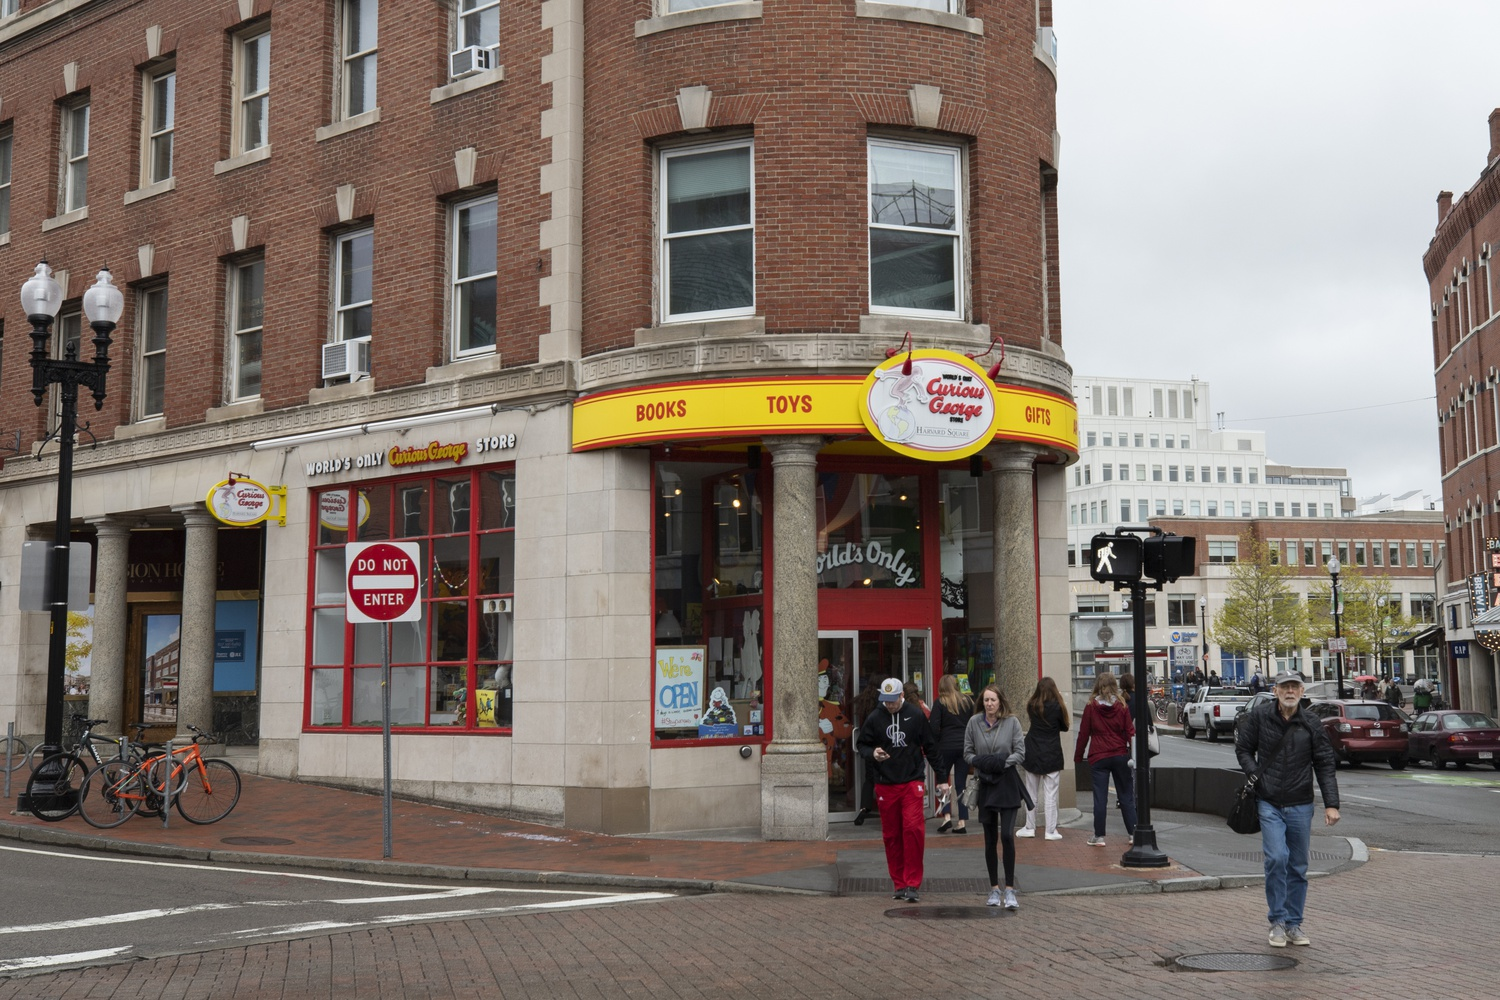 The Curious George Store in Harvard Square will soon relocate to a new location in Central Square.